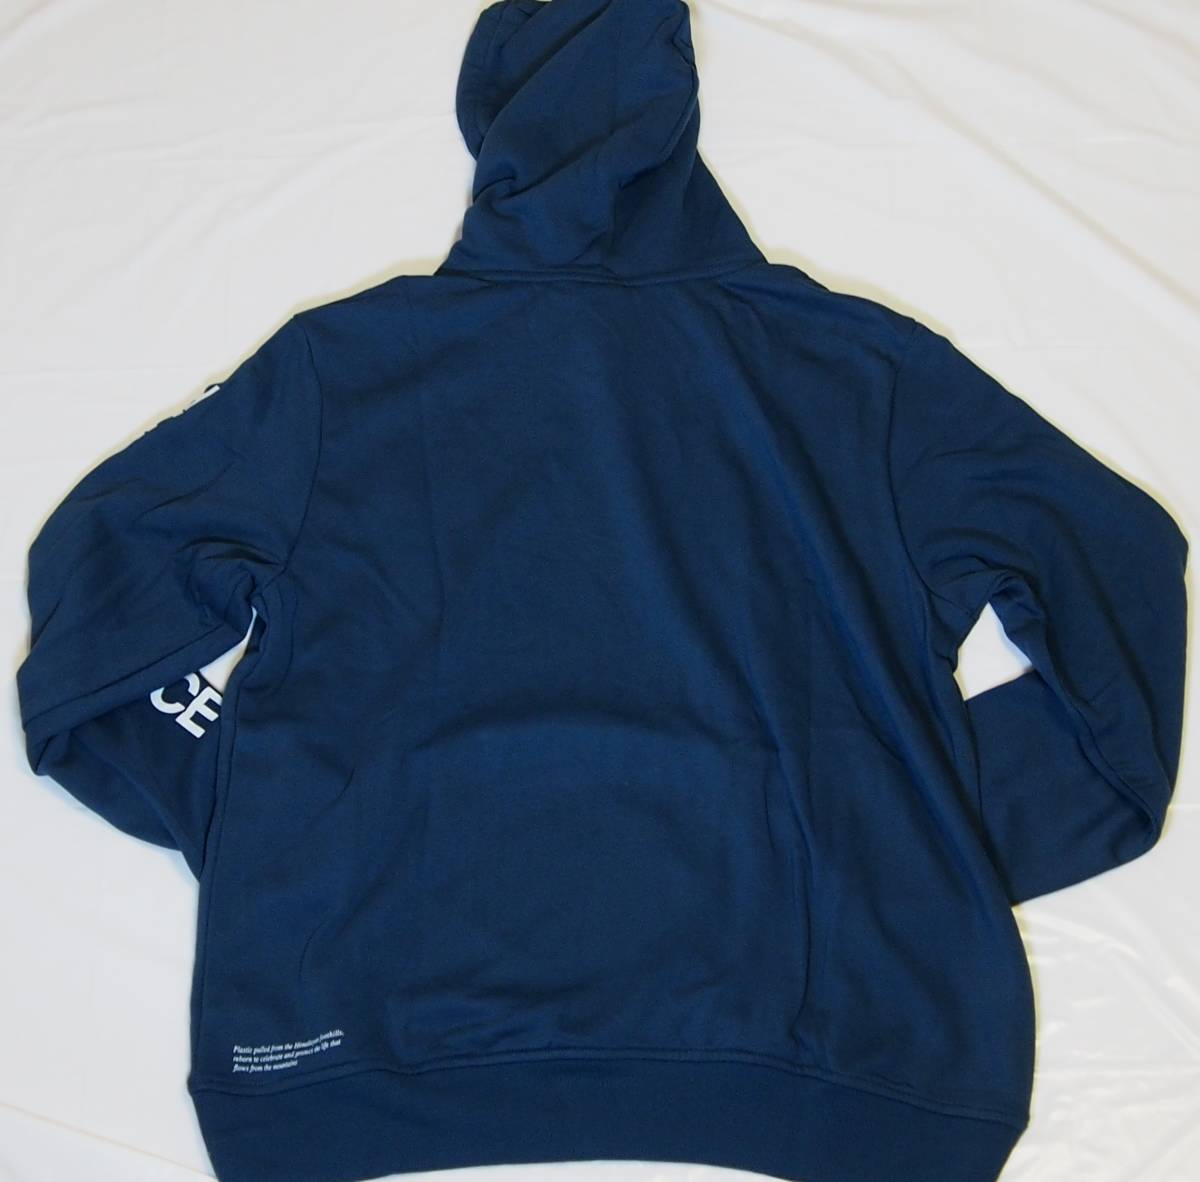 【USA購入、未使用タグ付】ノースフェイス パーカー XL ブルー系 The North Face Himalayan Bottle Source Pullover Hoodie_画像3